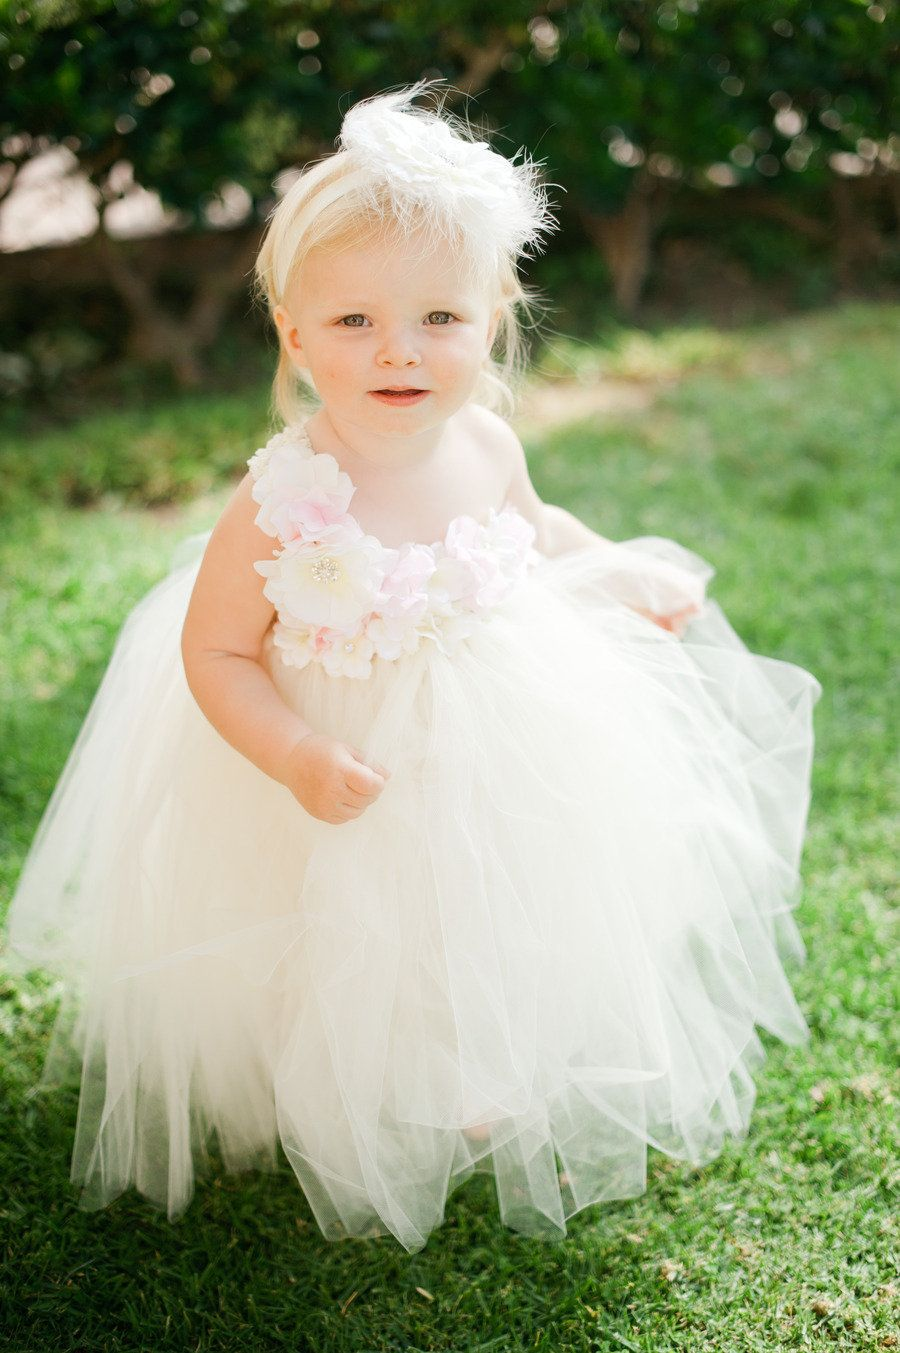 Beach wedding flower girl dresses  Santa Monica Wedding from Heather Kincaid  Flower Girl Dresses